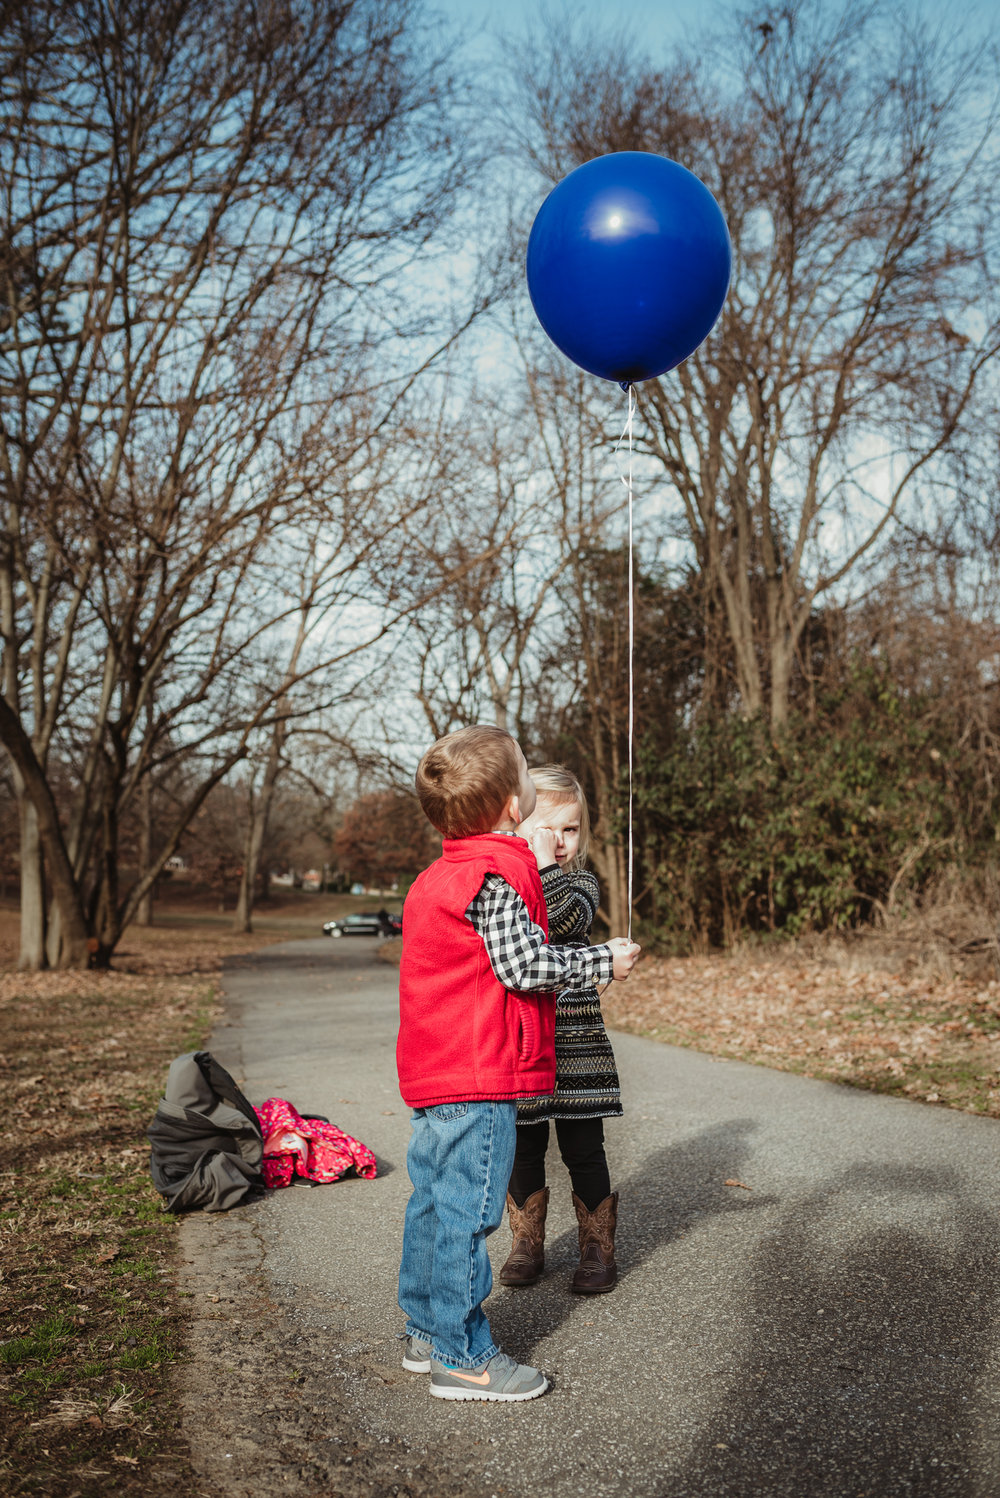 Twin three year old siblings hold onto a blue balloon in Raleigh during their family photos, the blue balloon representing their brother who passed away as a baby.